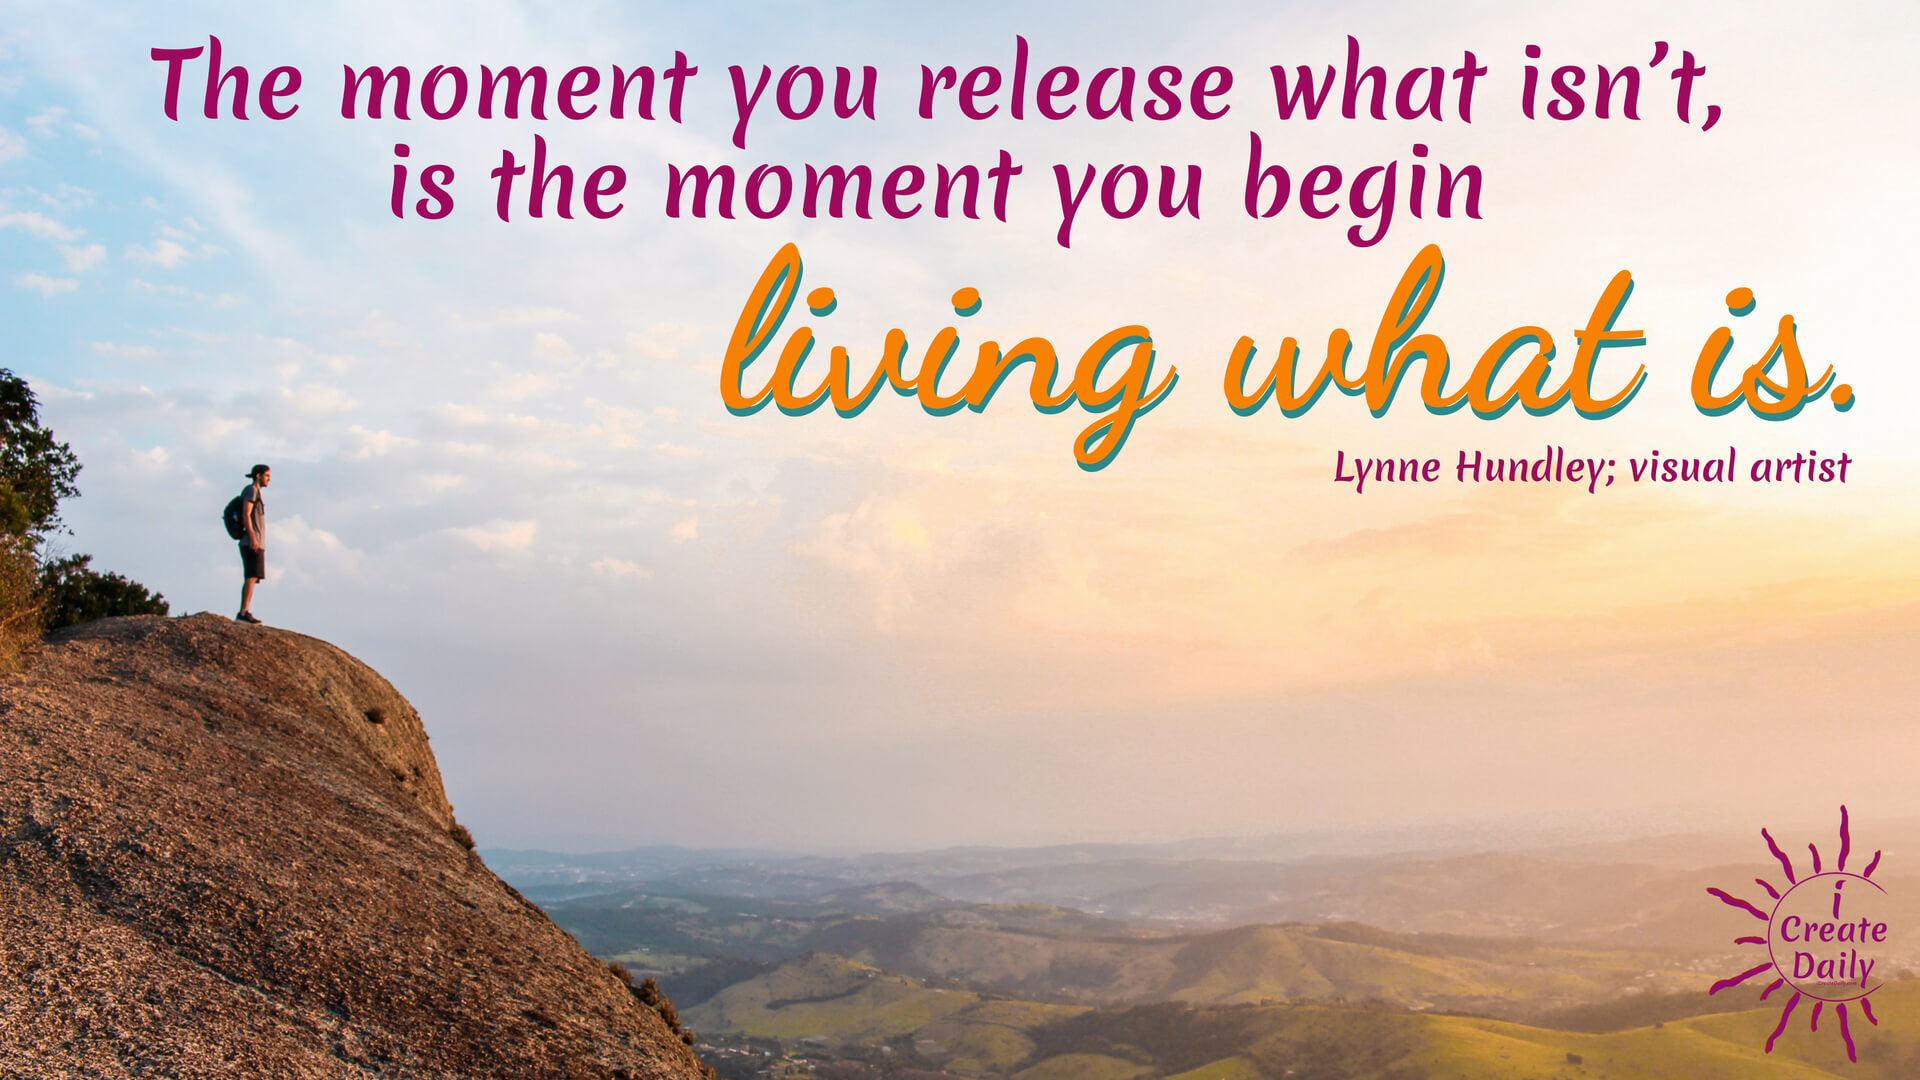 """The moment you release what isn't, is the moment you begin living what is."" ~Lynne Hundley #life #quotes #inspiration #motivationalquotes"